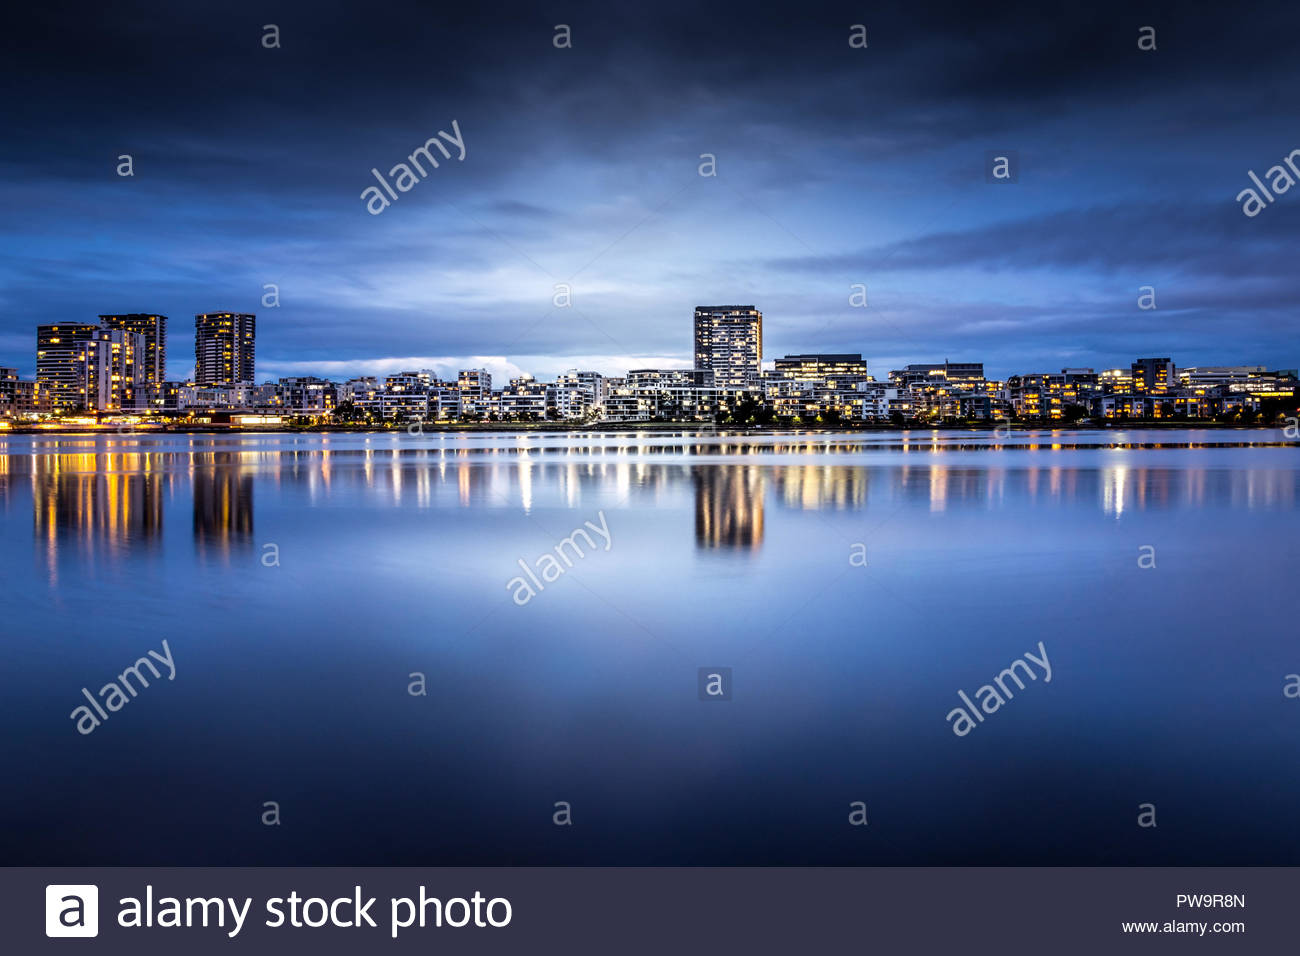 Modern apartments in a medium density suburb along the river. Reflections in the water. Dusk sky. Long exposure - Stock Image